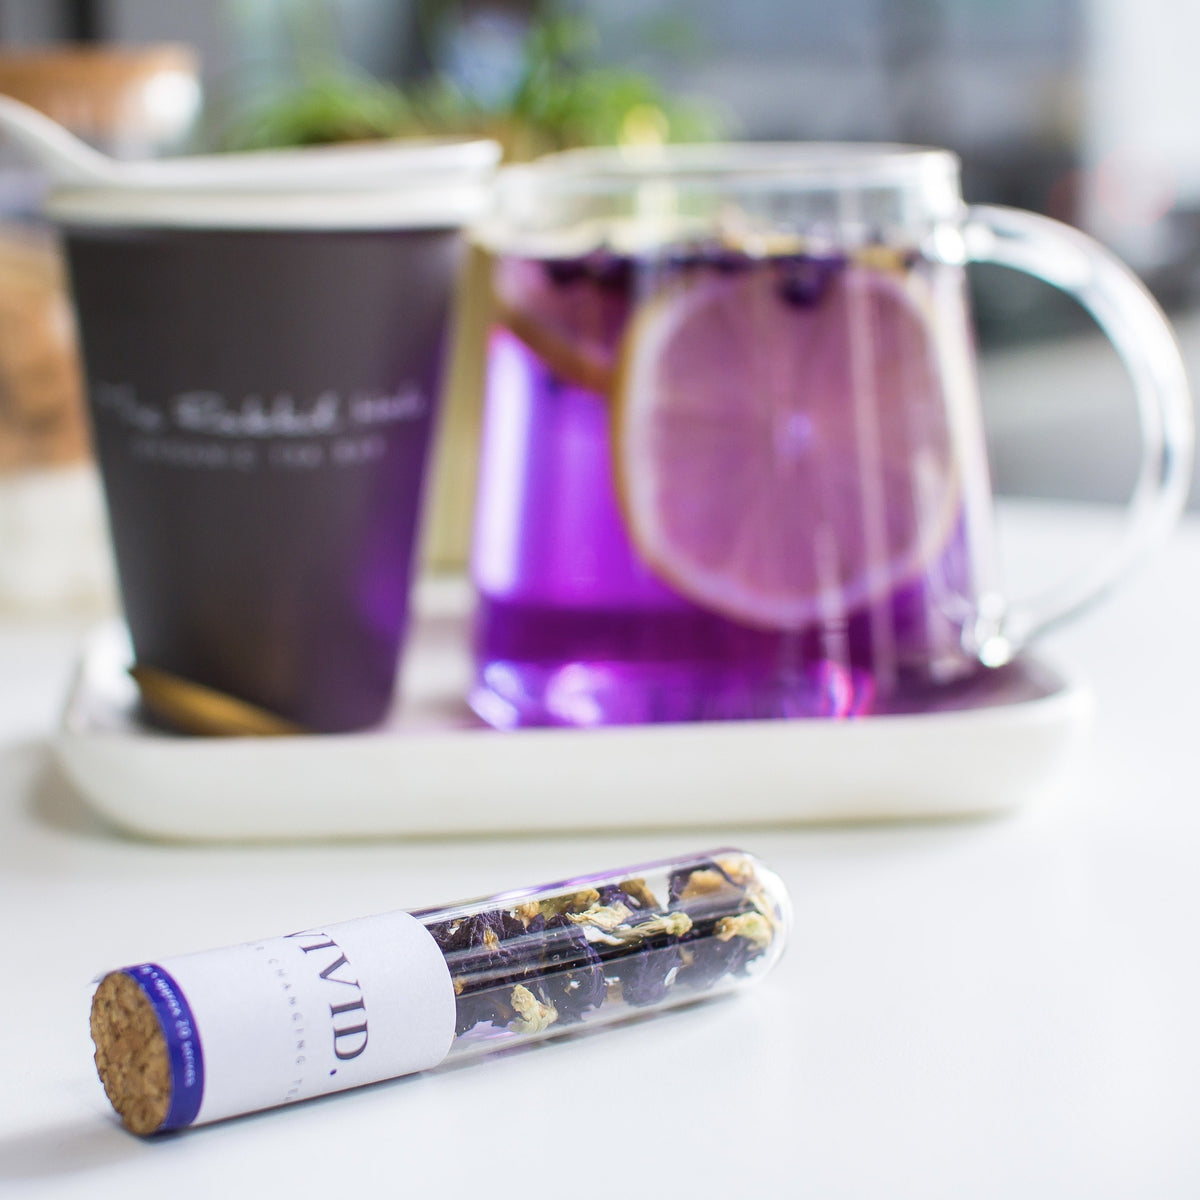 Vivid loose leaf tea by The Rabbit Hole - purple tea in teapot with cup and tube of Vivid tea